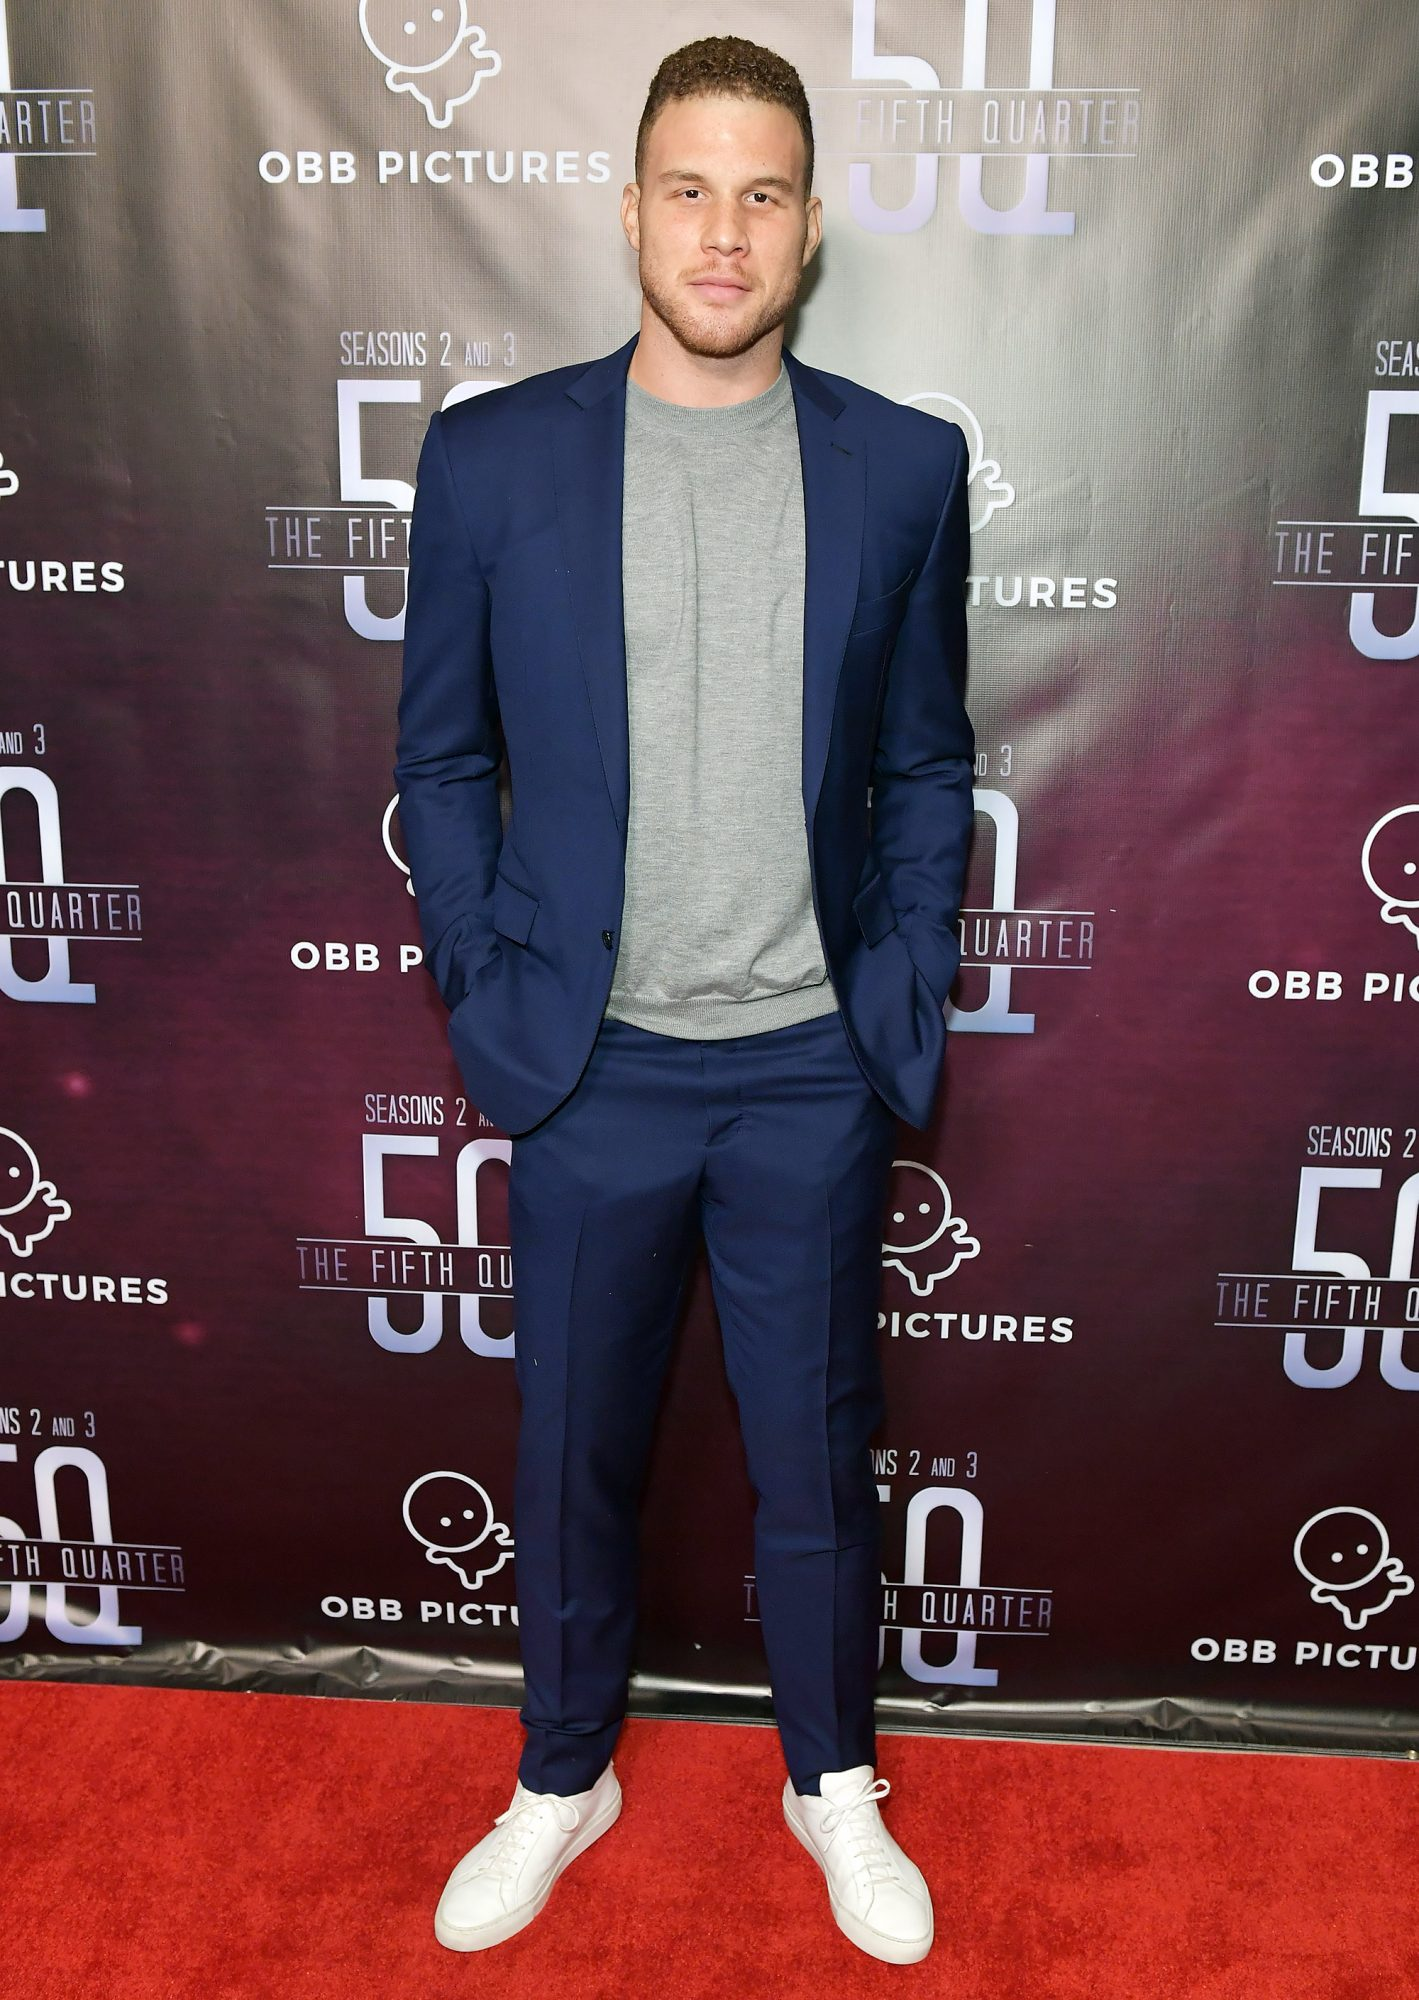 "Premiere Of OBB Pictures And go90's ""The 5th Quarter"" - Arrivals"